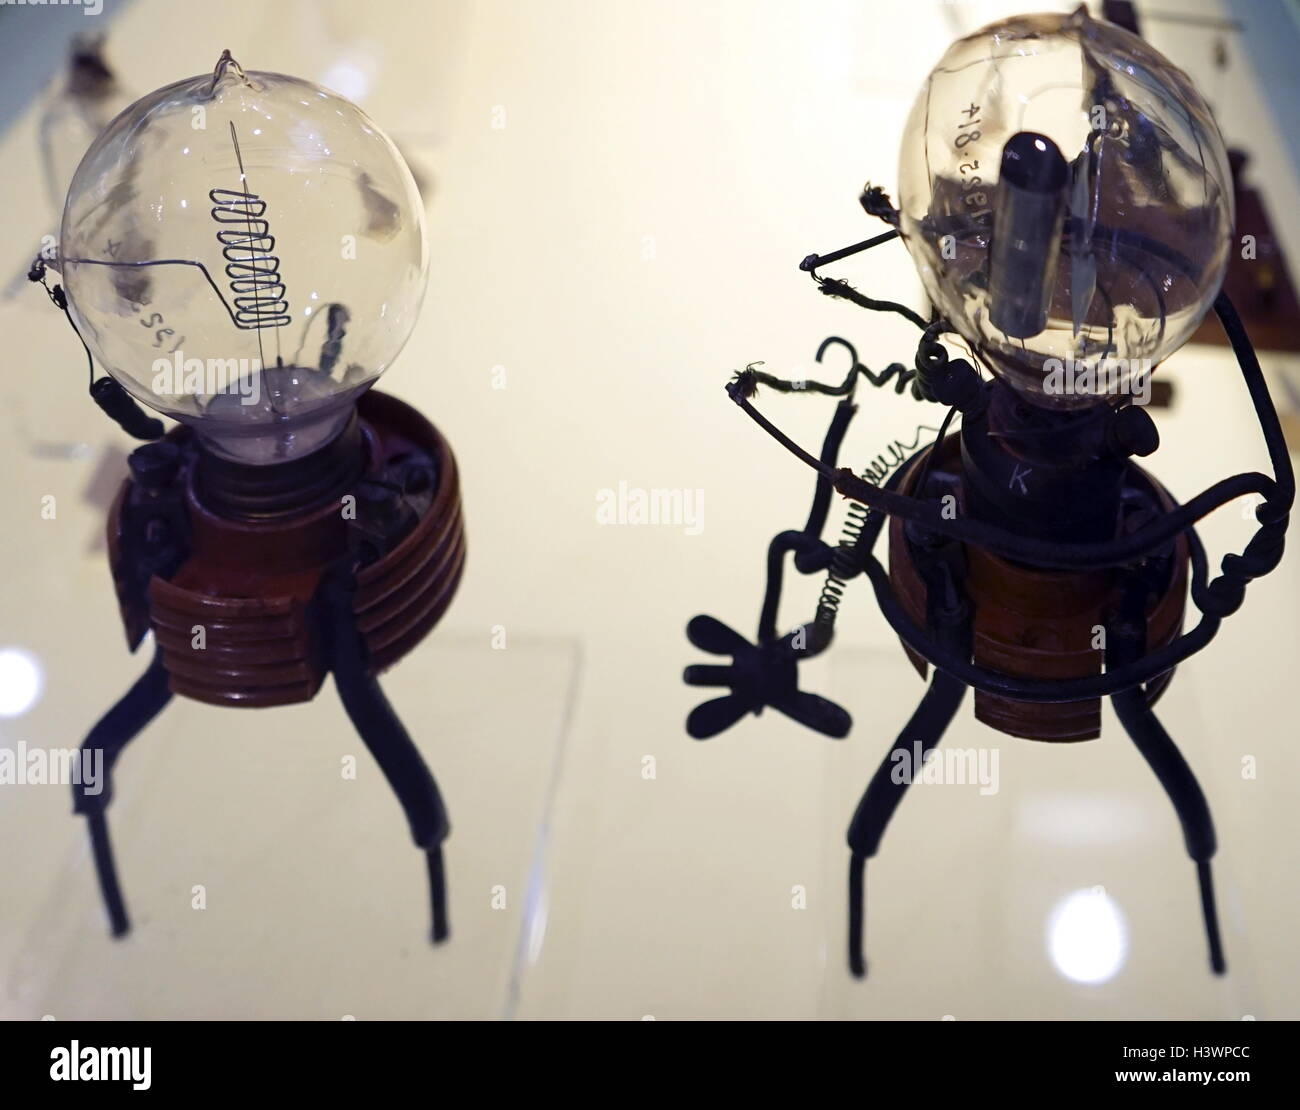 Fleming's Diode Valve 1904. - Stock Image